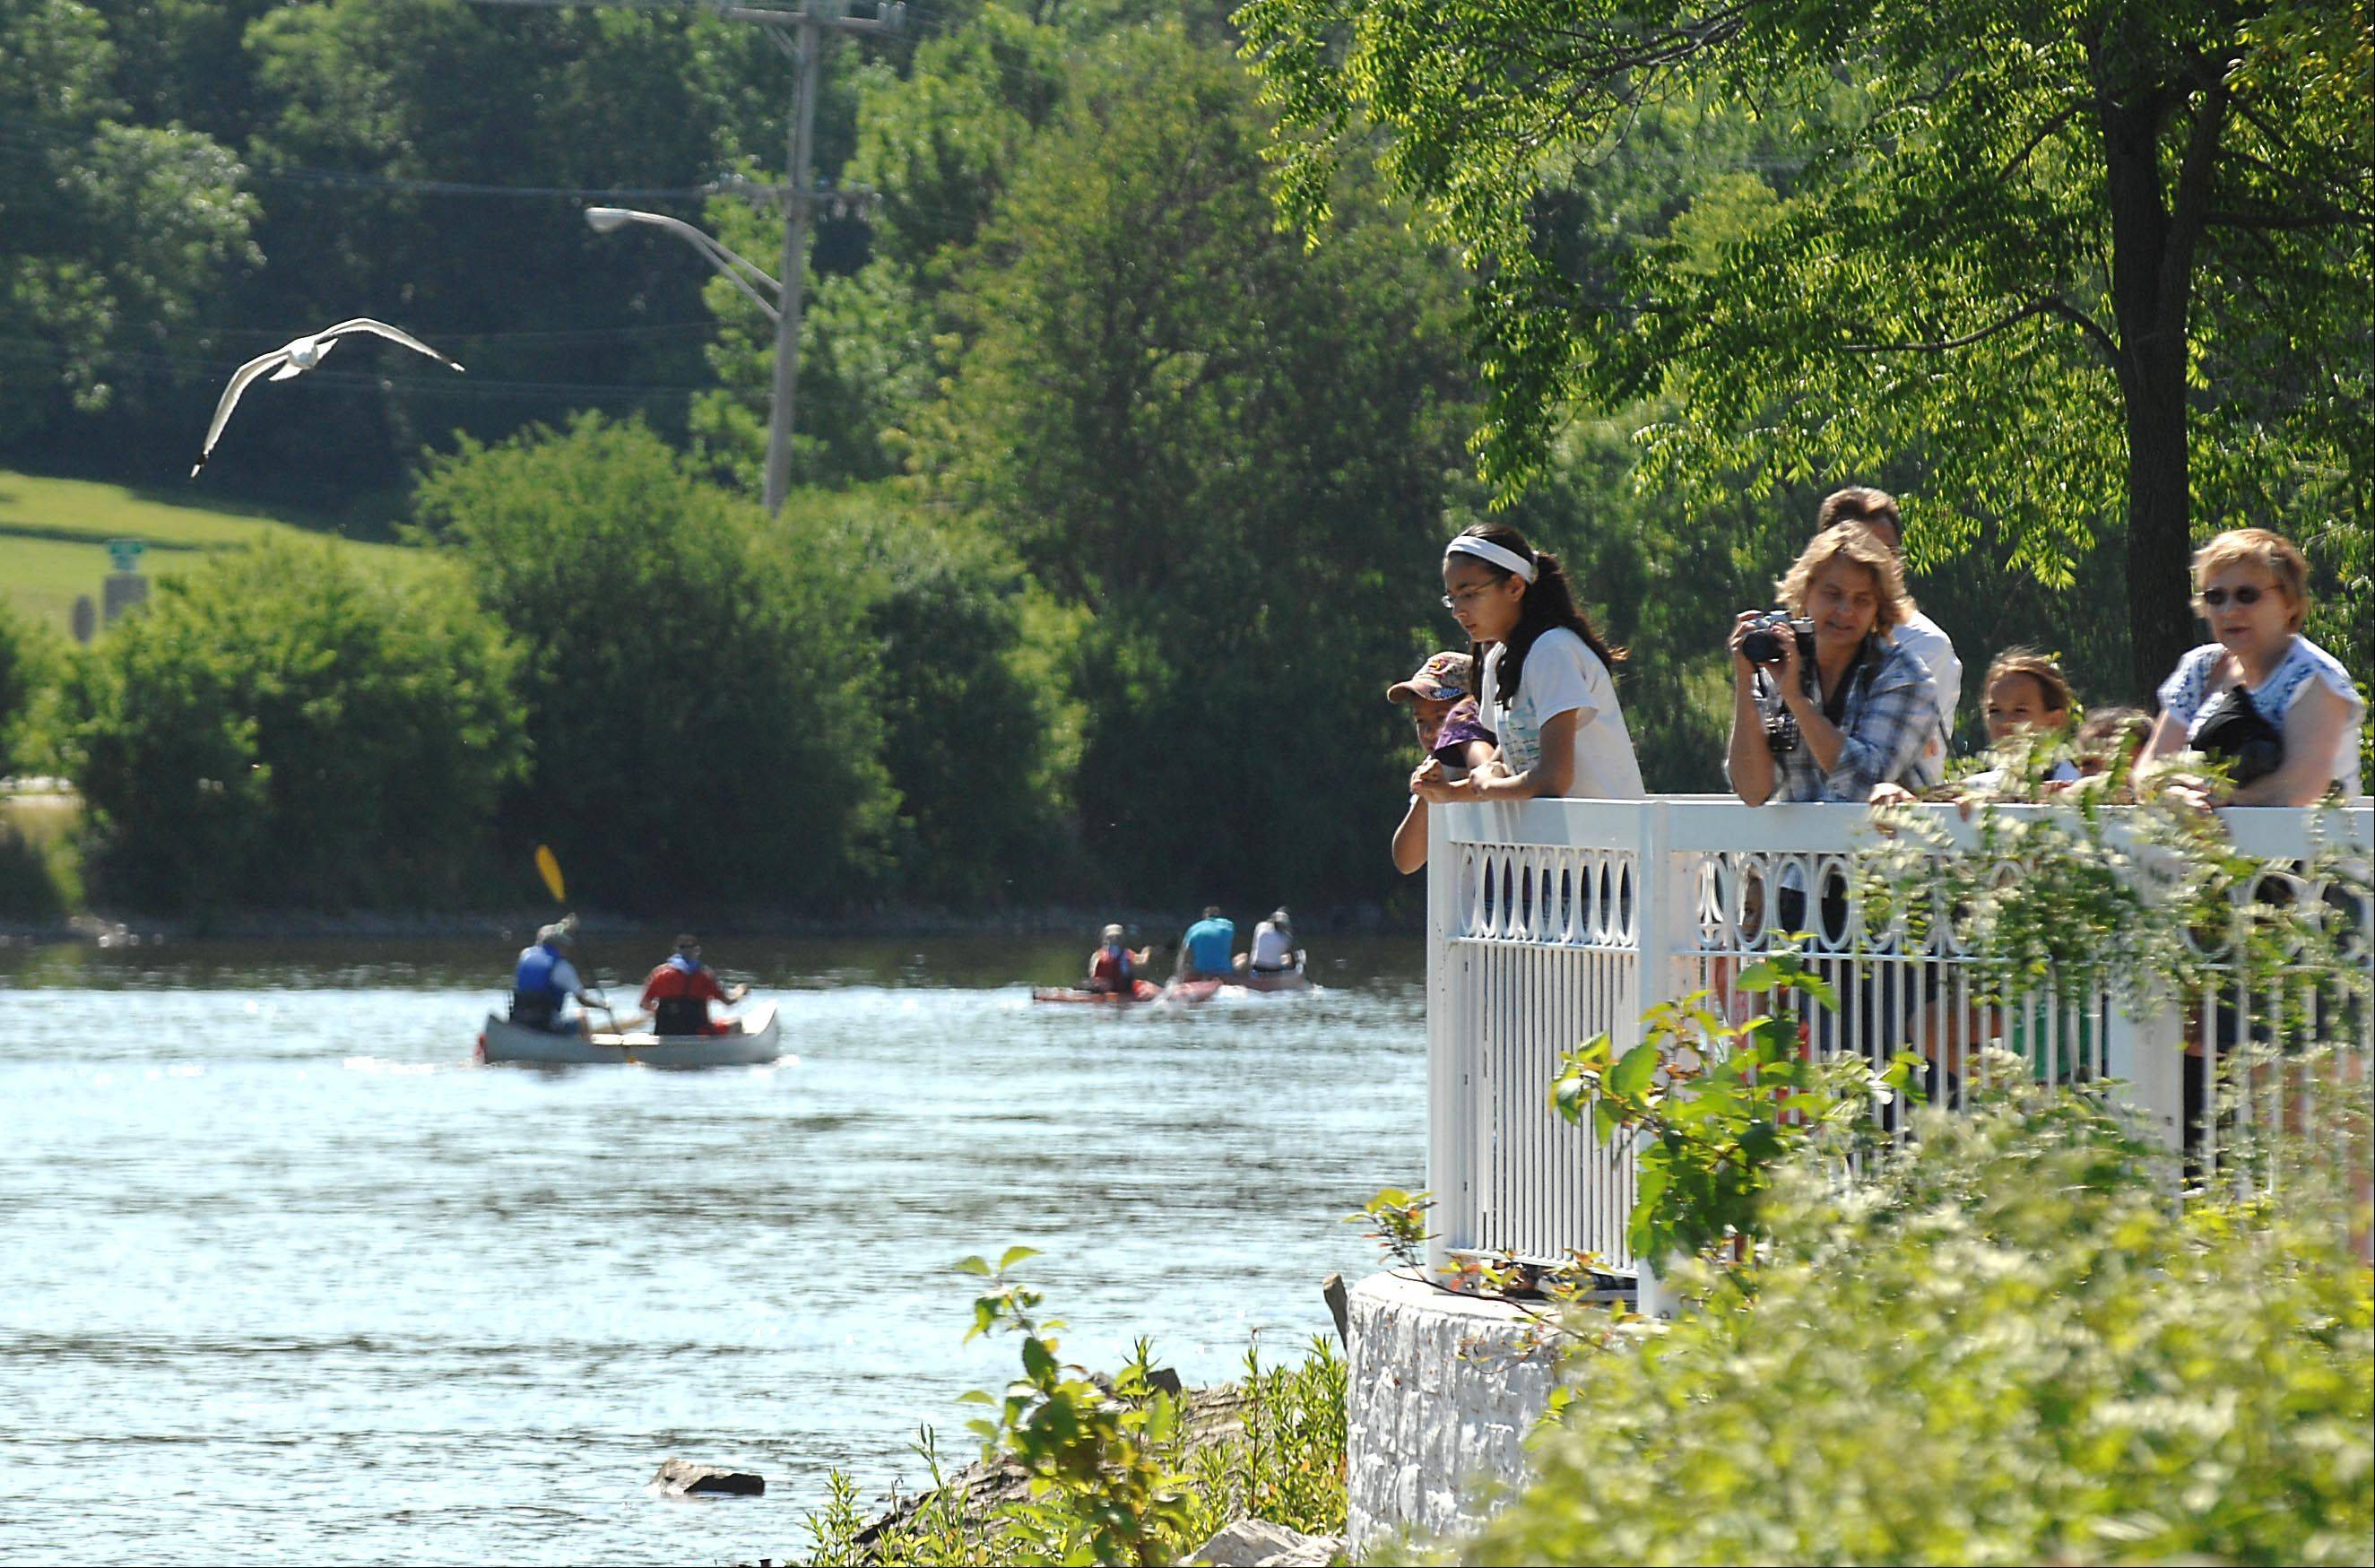 Spectators watch from a deck over the Fox River as the Mid-American Canoe and Kayak Race. Organizers are hoping 500 canoes will participate in this year's race.